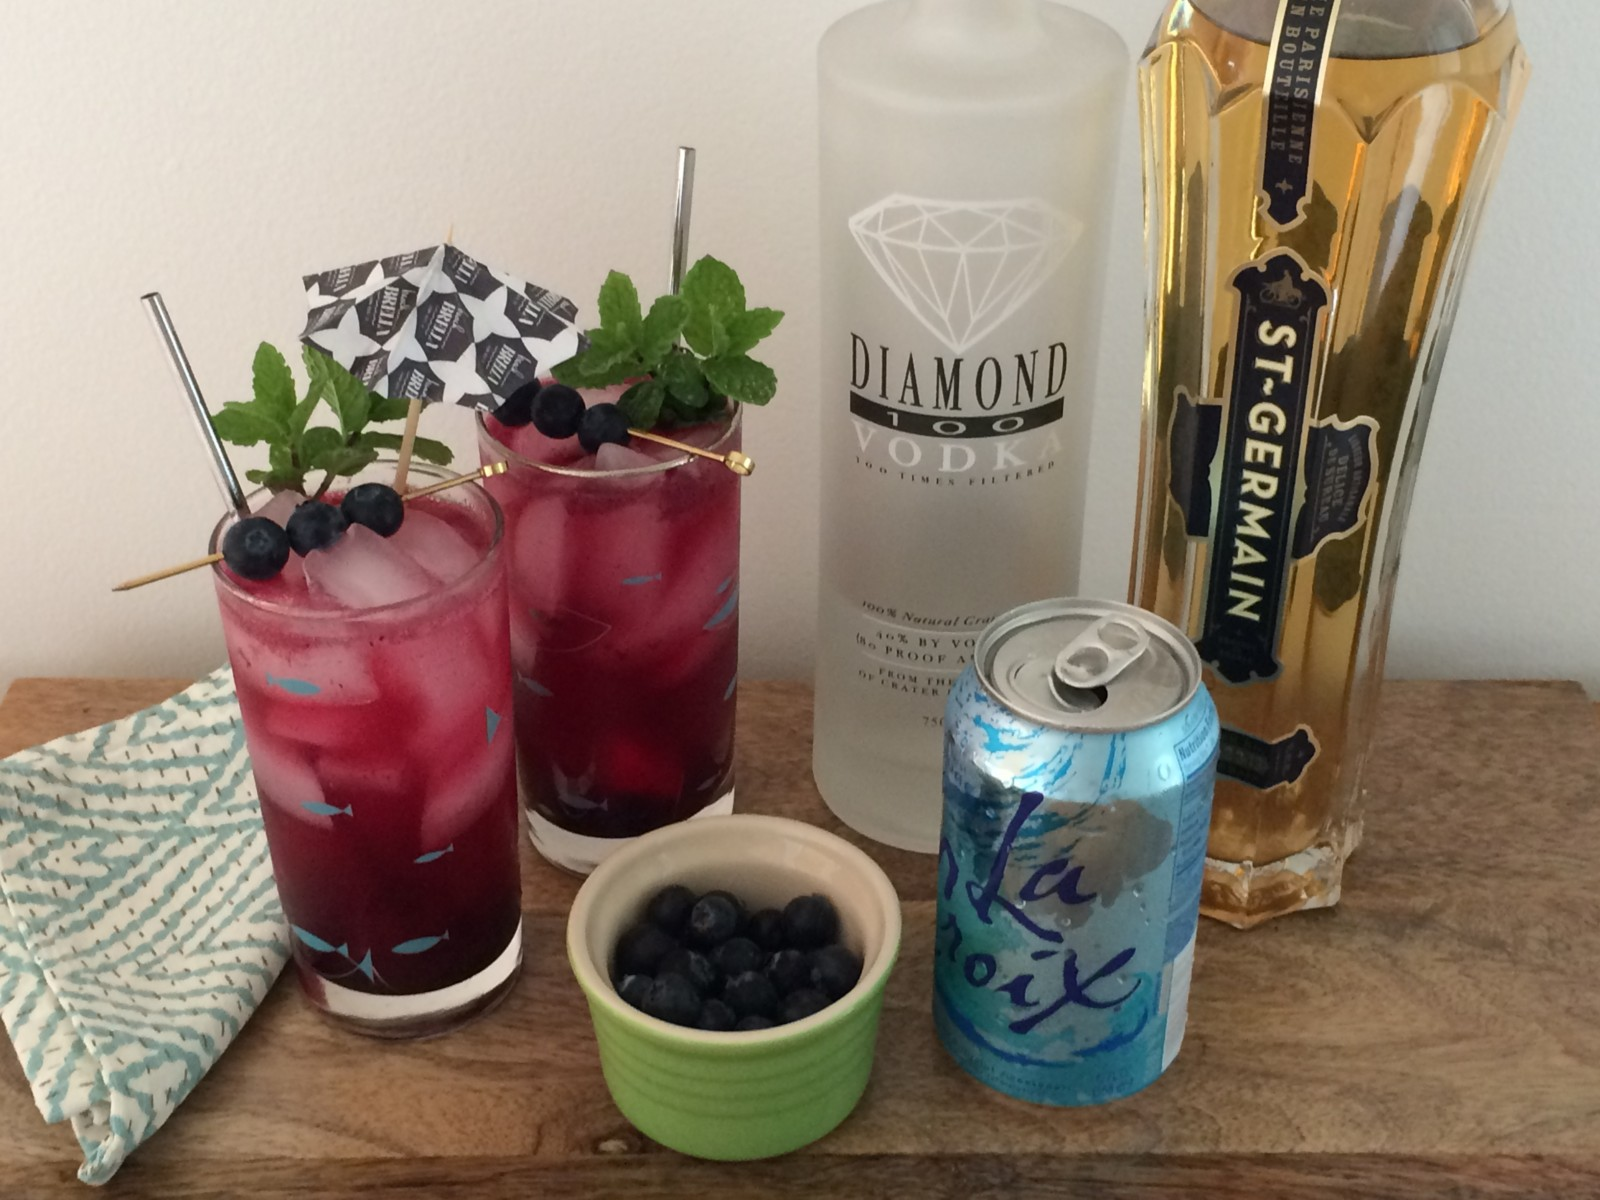 Two glasses of Spiked Blueberry Soda